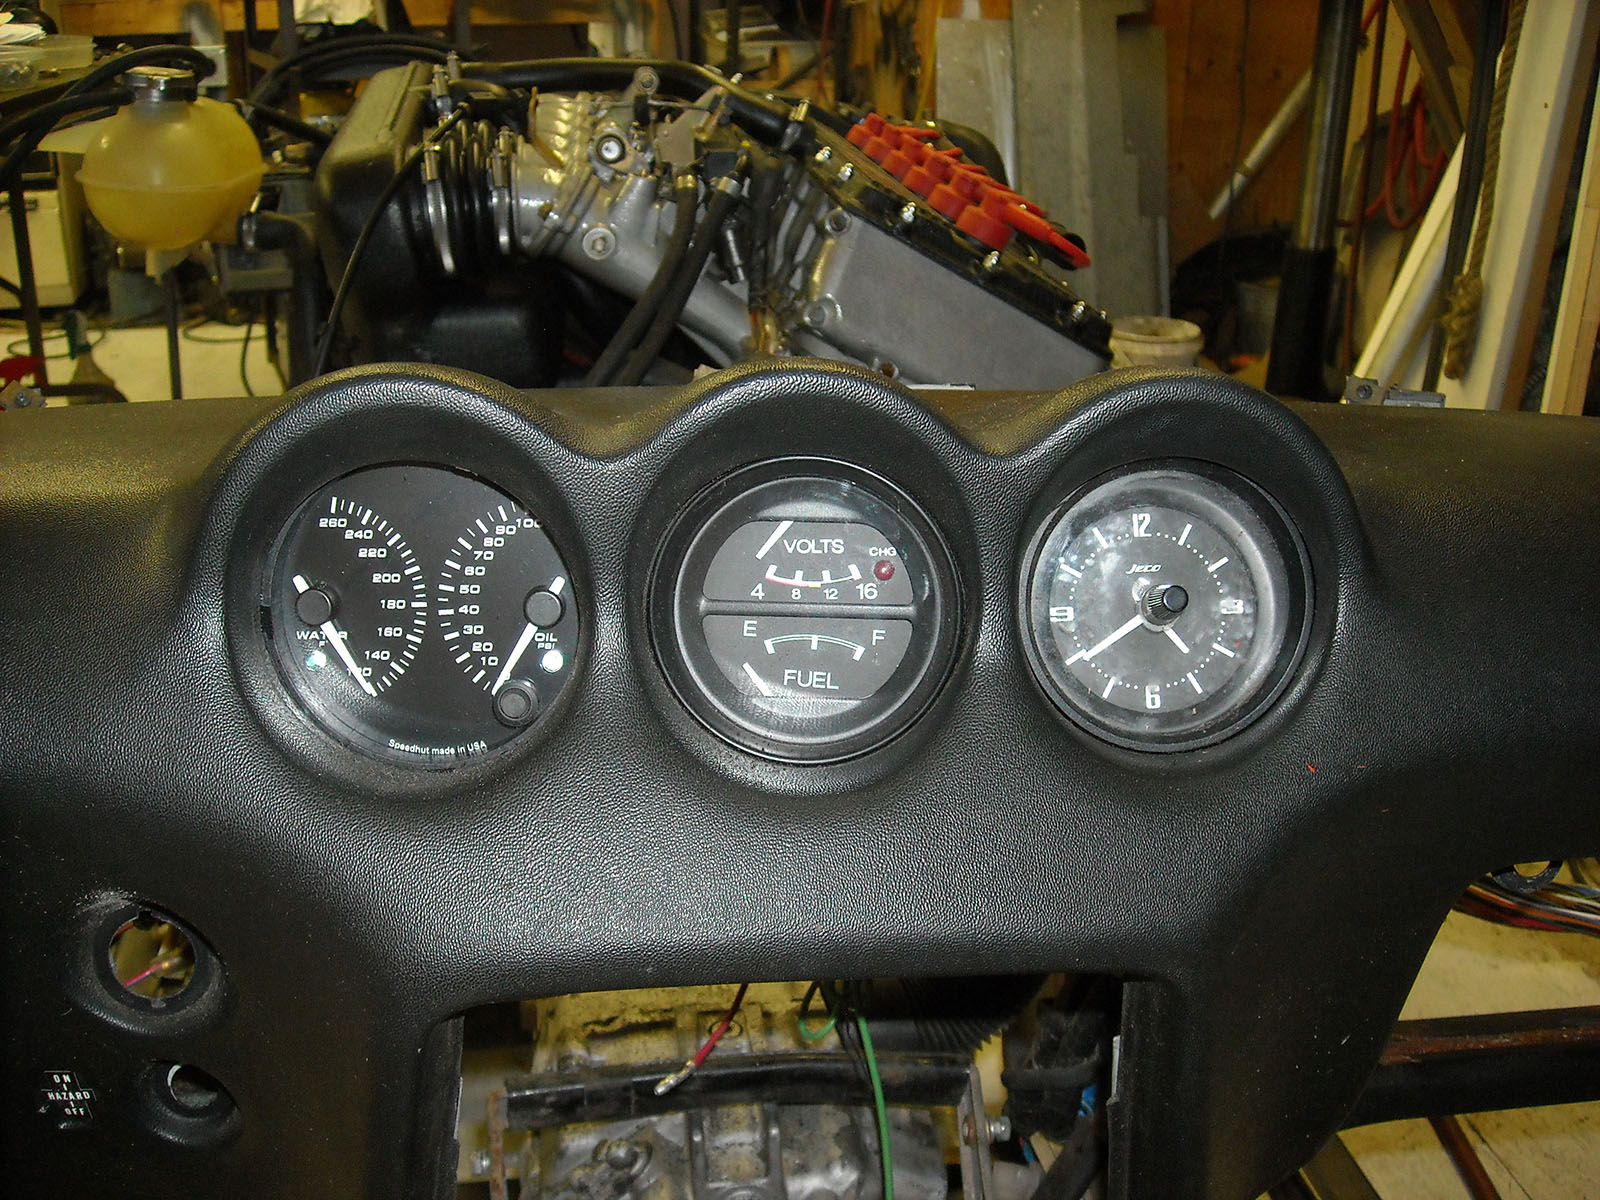 hight resolution of the braking system was completely rebuilt with new hard lines ss braided flex hoses and larger master cylinder from a 280z the front brakes use vented